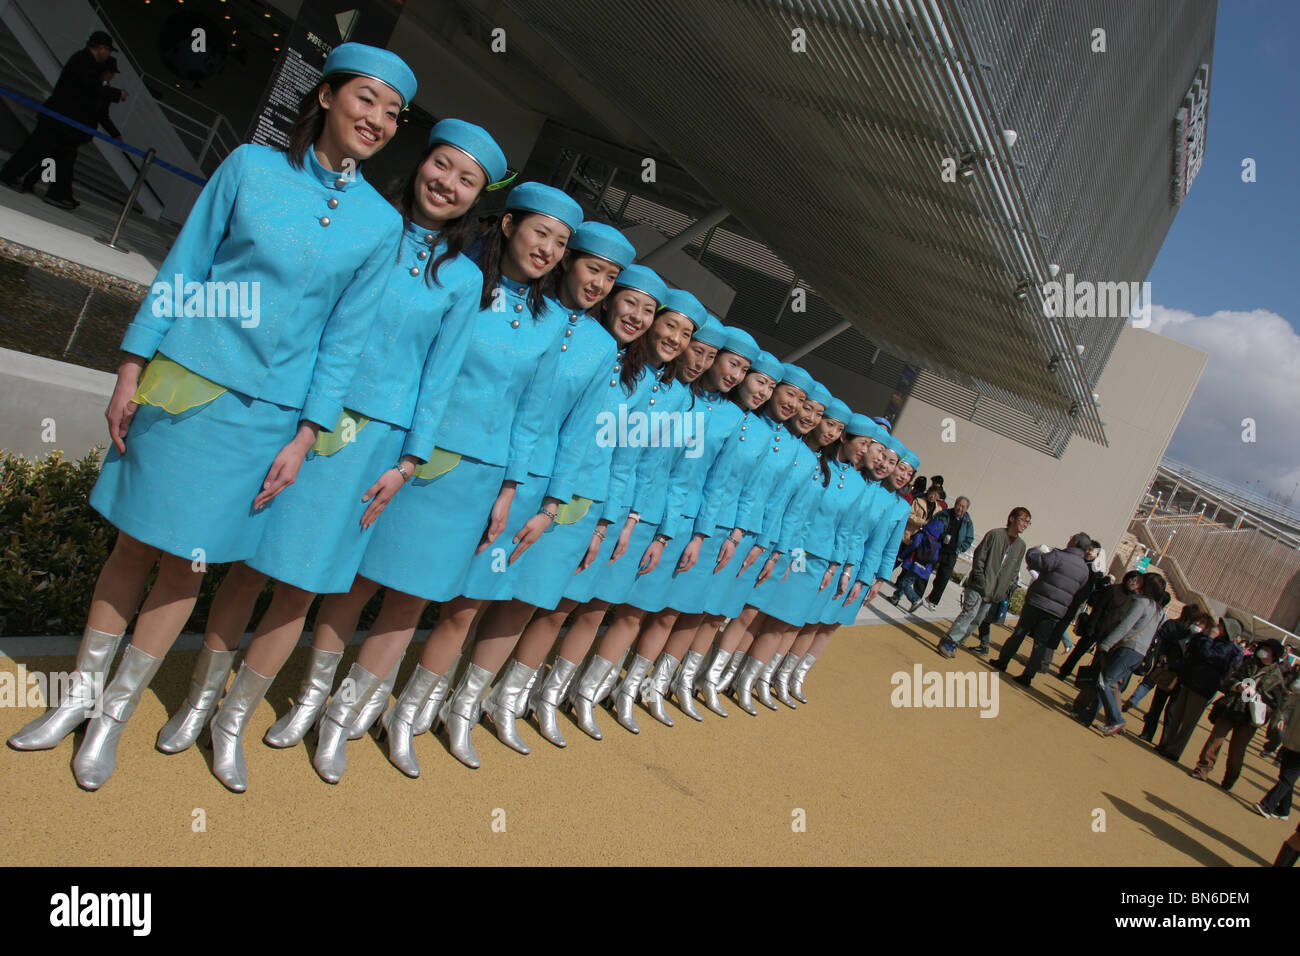 Japanese women wearing corporate uniforms greet visitors at the beginning of day, at World Expo 2005 in Aichi, Japan. - Stock Image